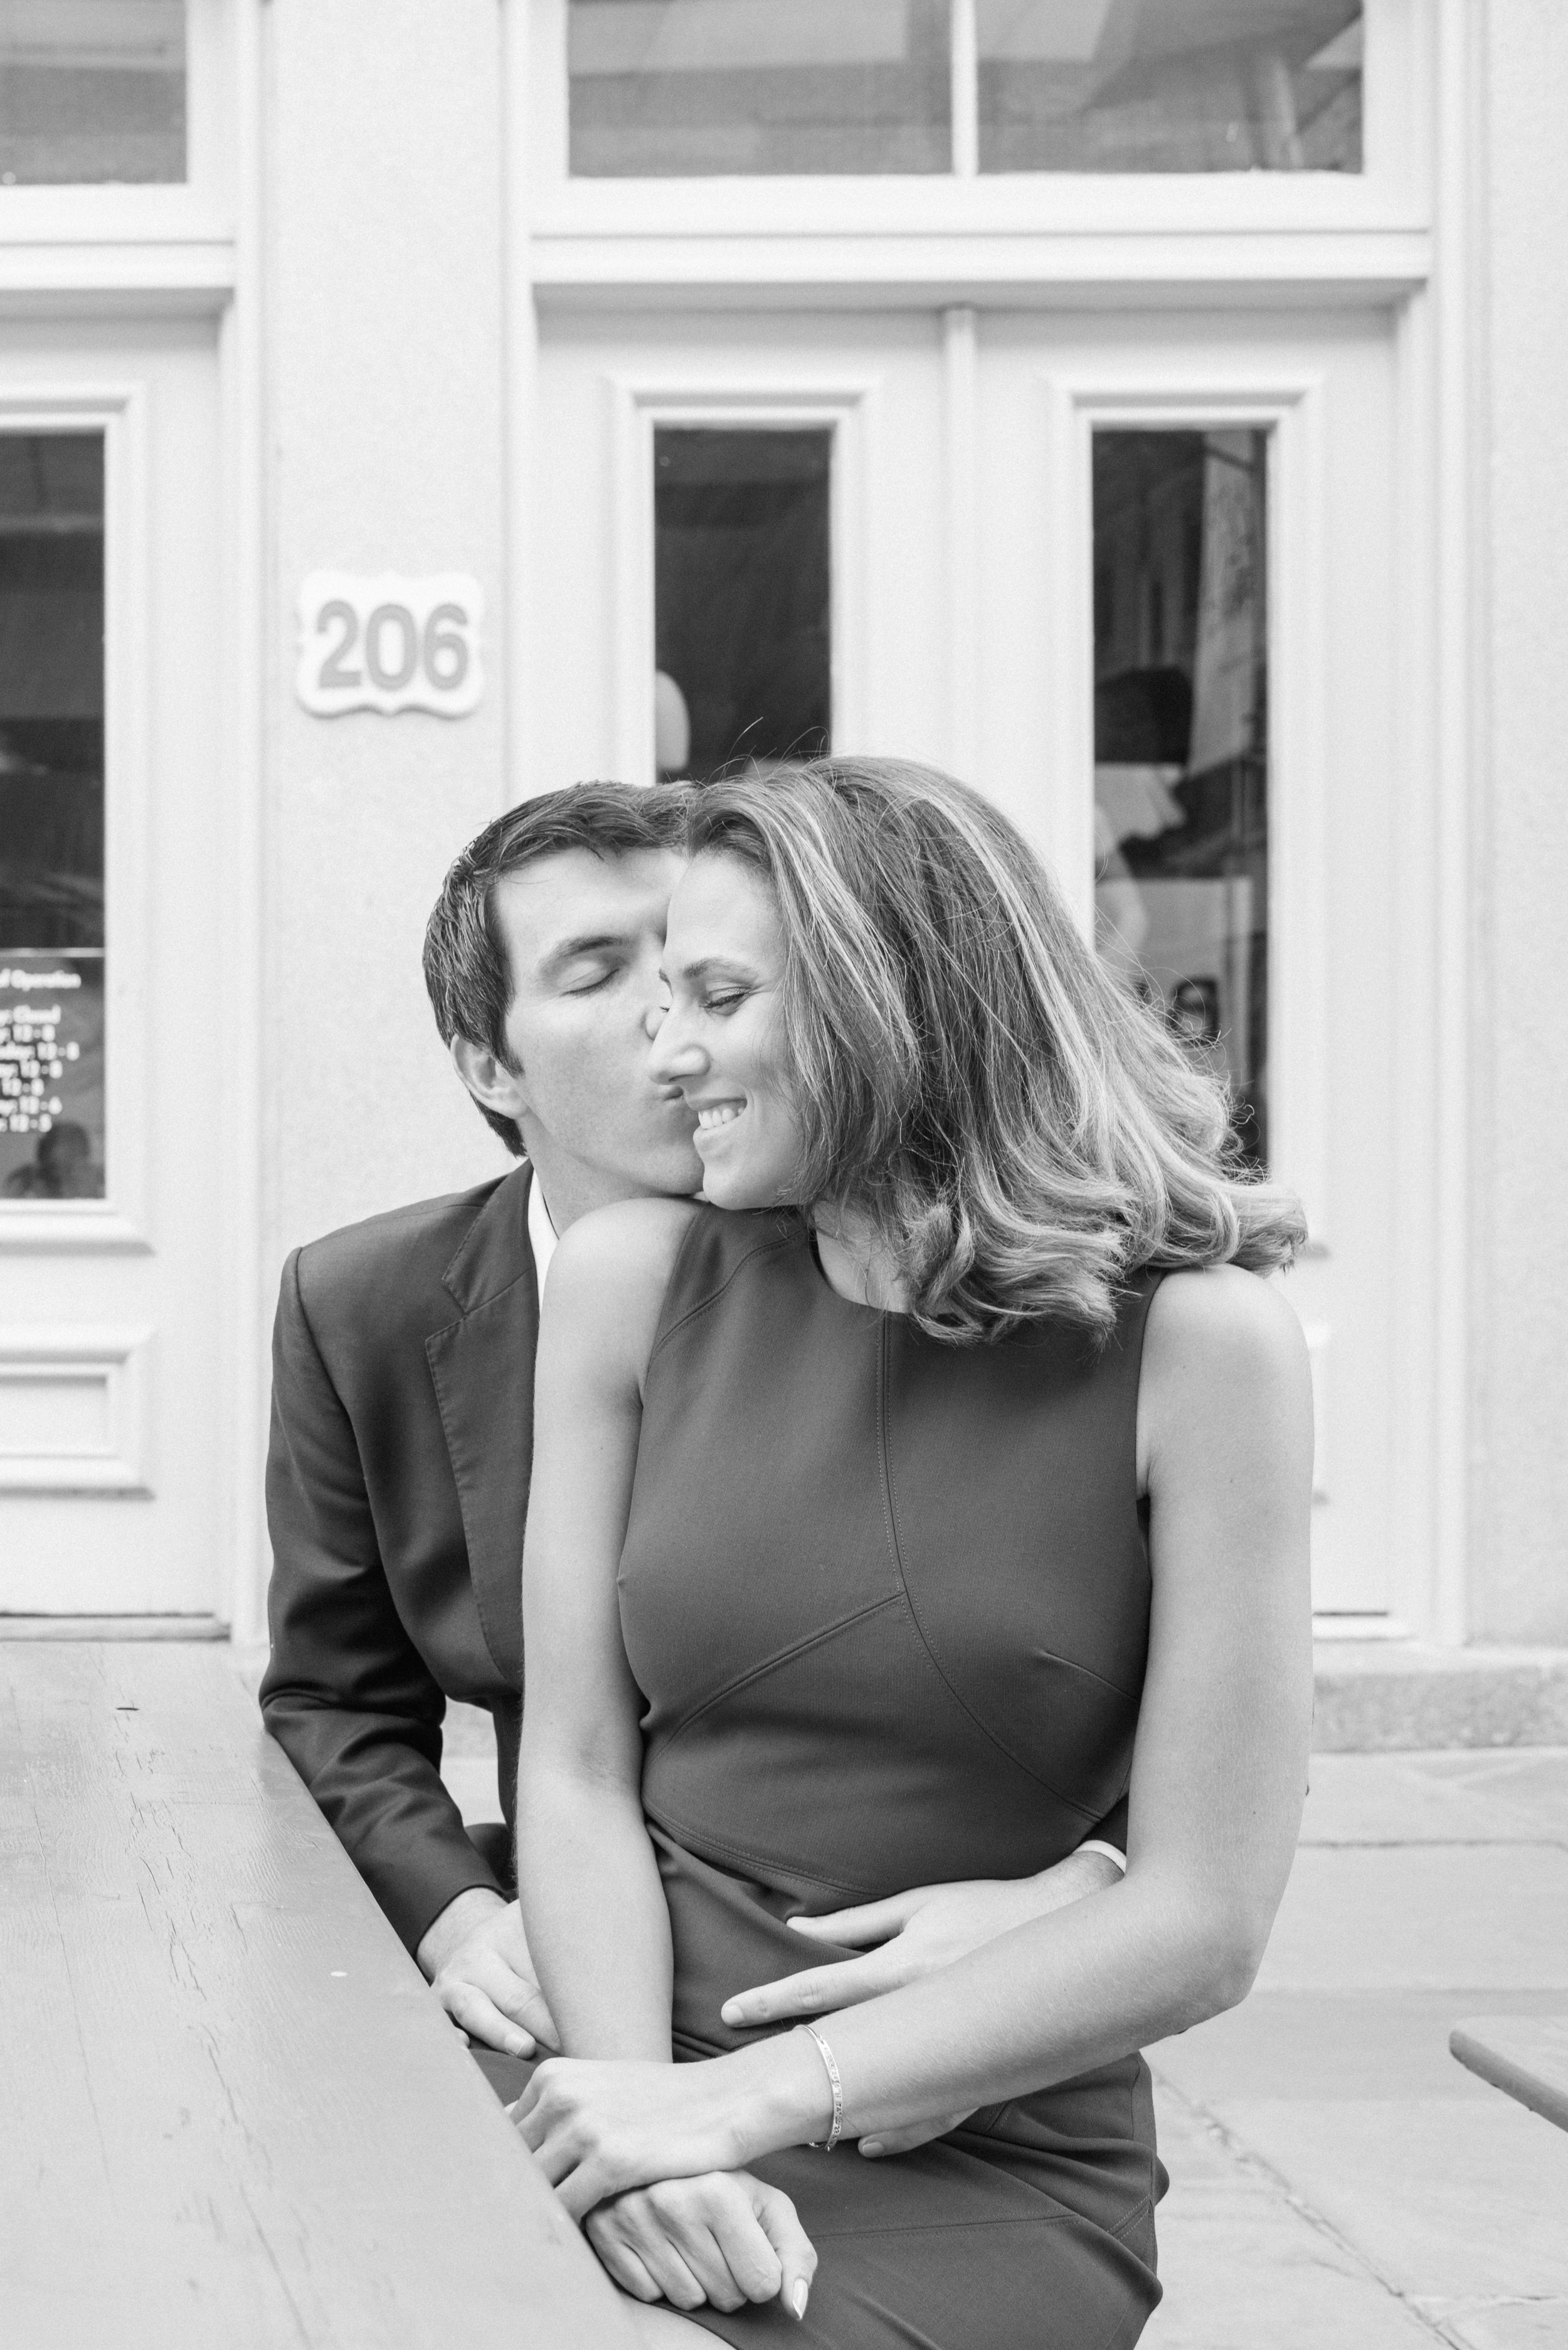 Engaged couple, fiance, engagement, engagement photos, couple in love, black and white photo, moments, darling moments, cute, adorable, real love, kiss, south street seaport engagement, weekend engagement